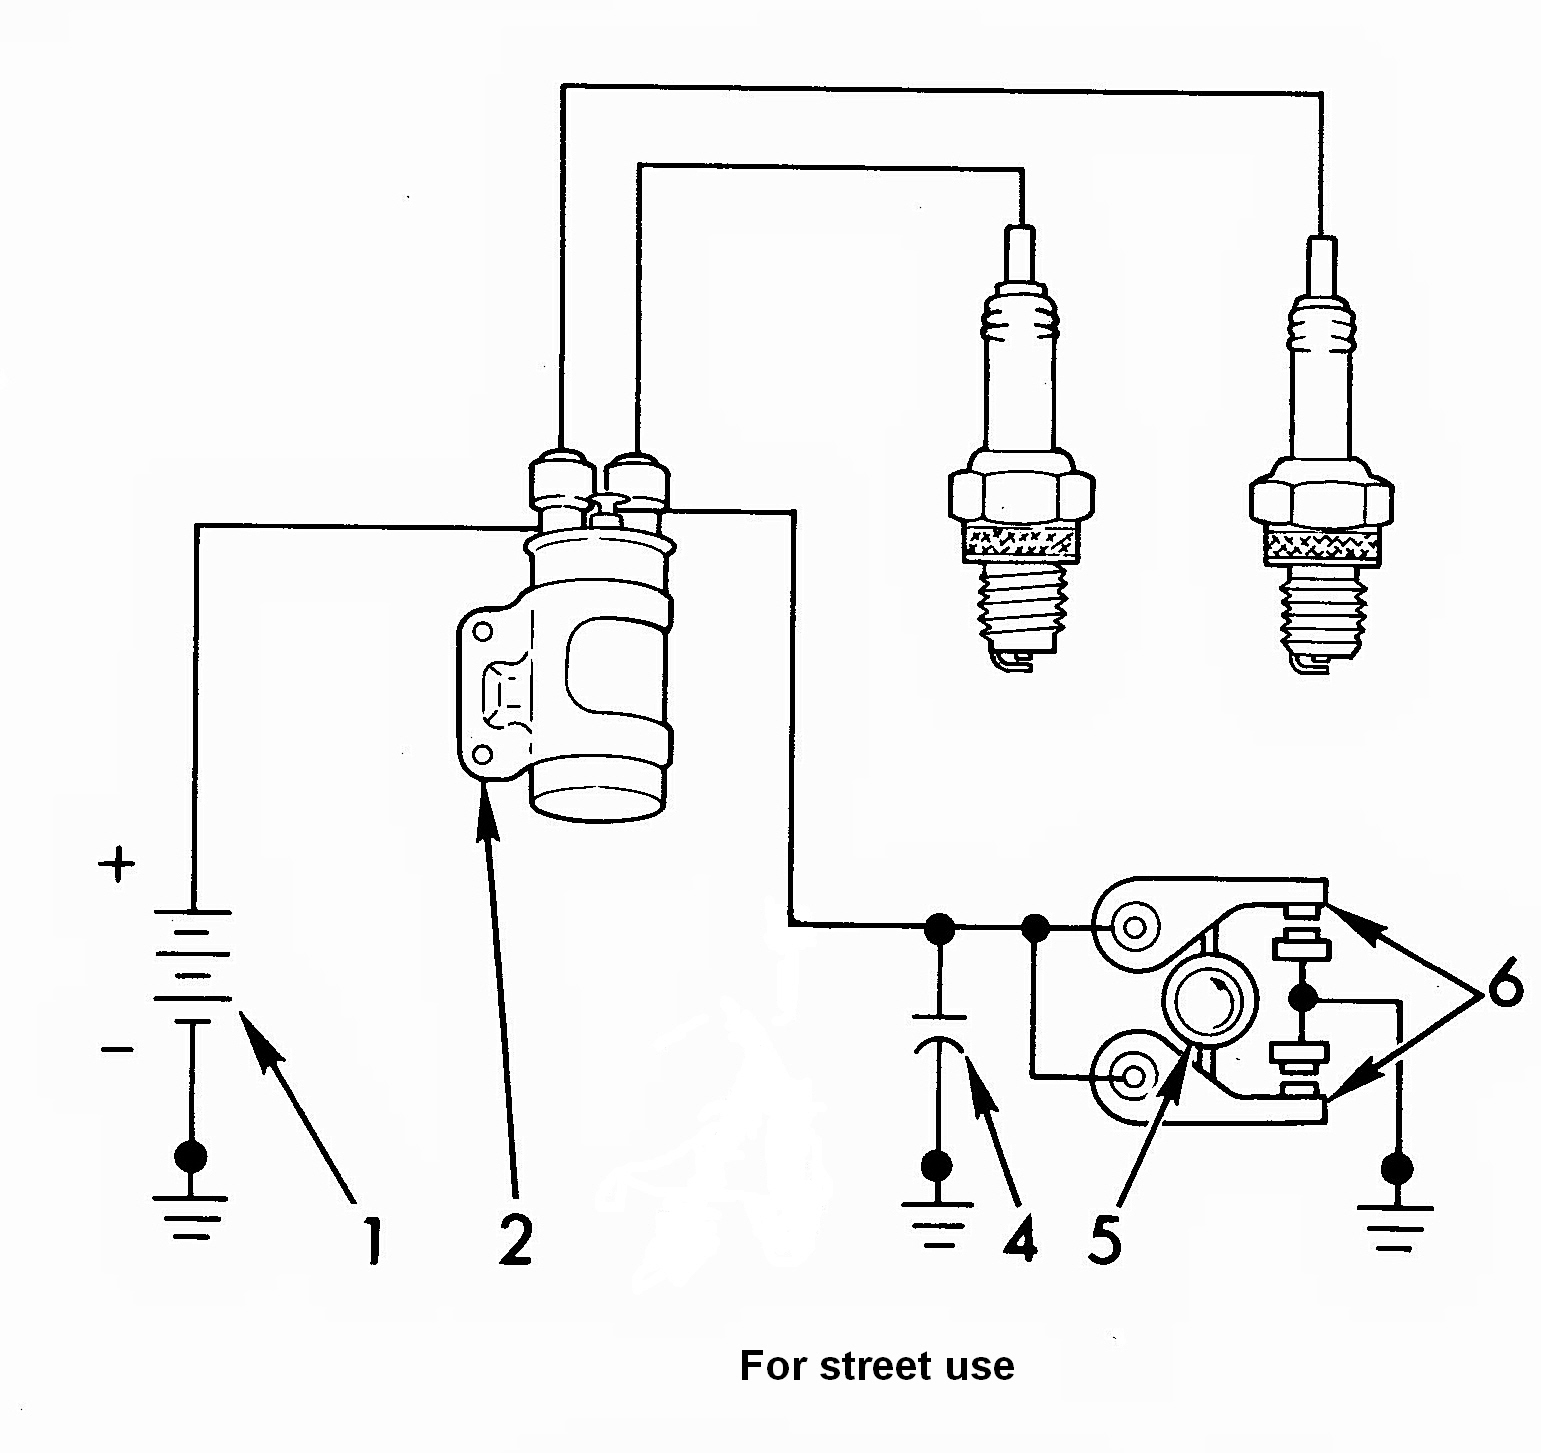 12 volt ignition coil wiring diagram 12 volt battery parallel wiring diagram